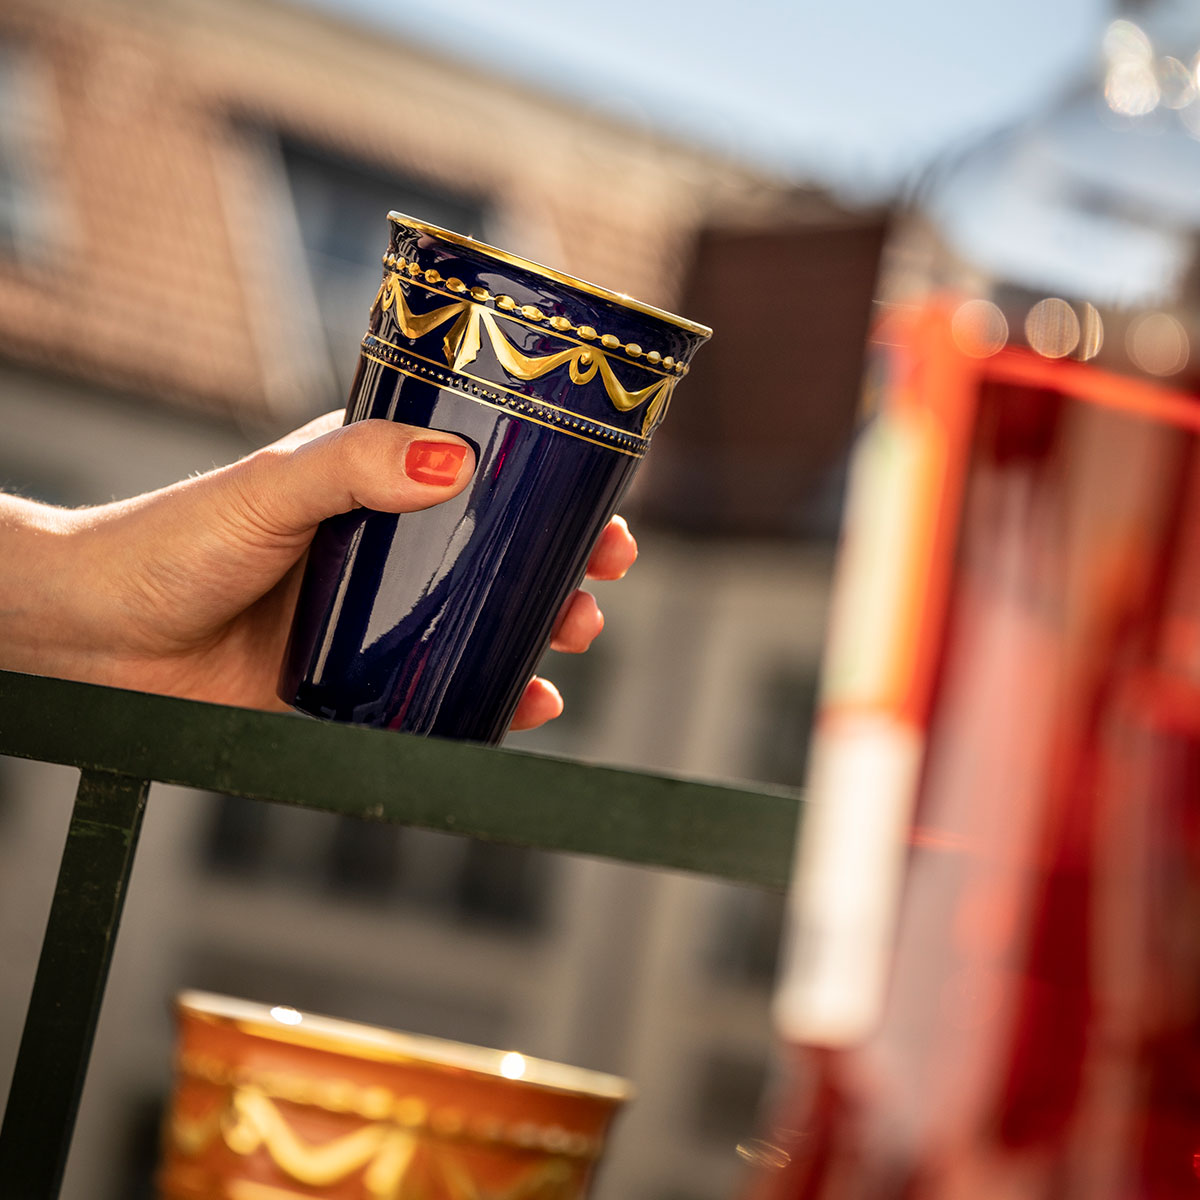 To-go_Champagner-Becher_1200x1200px